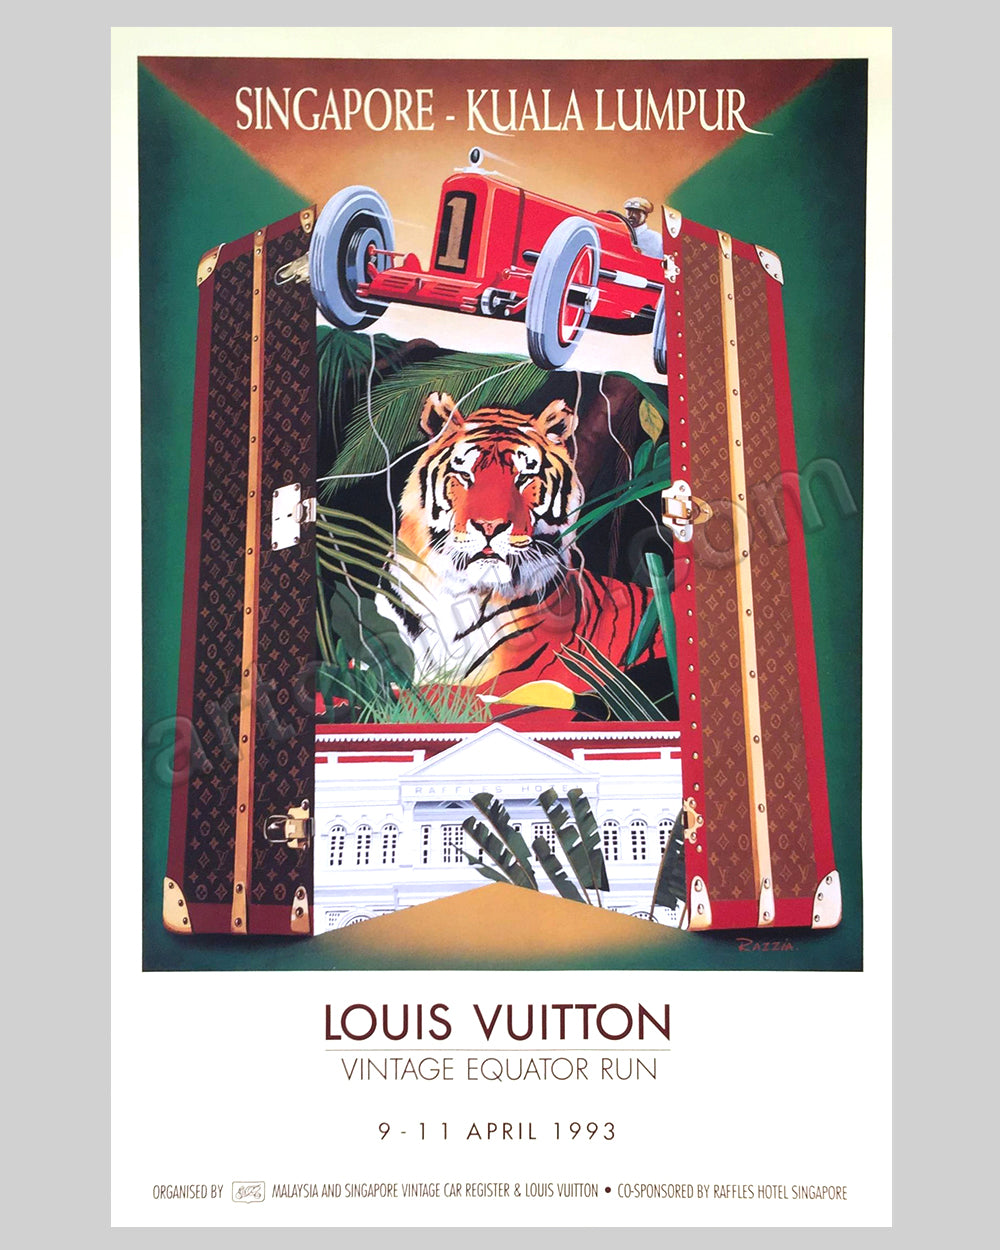 Louis Vuitton Vintage Equator Run 1993 original event poster by Razzia